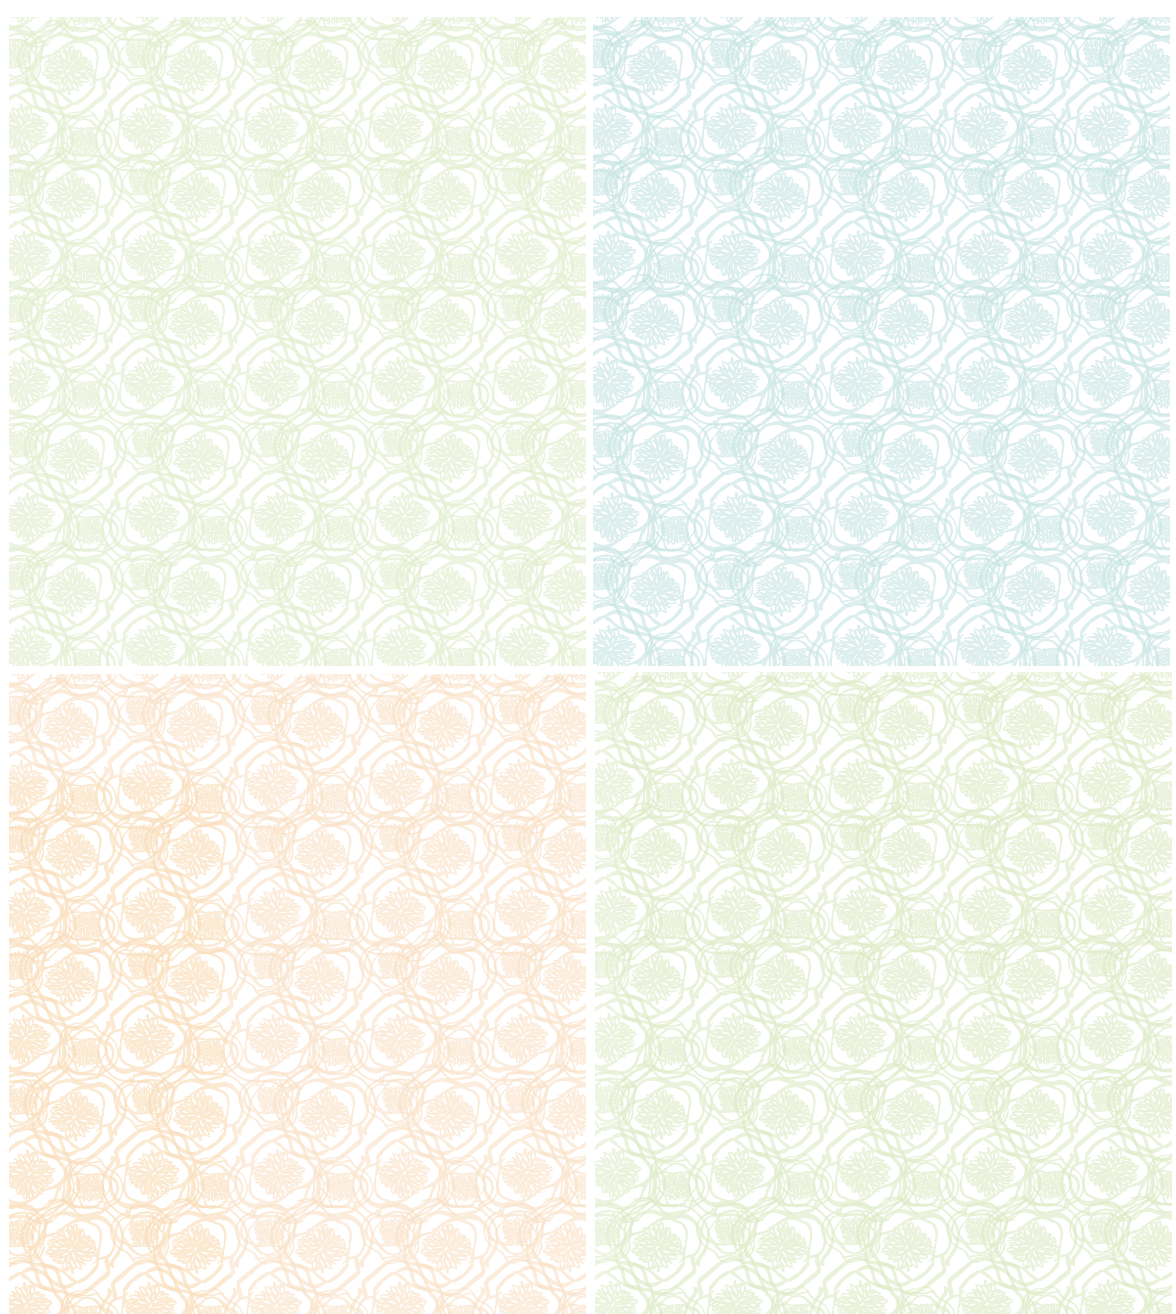 client: Whole Foods Market - Pattern, vector illustration